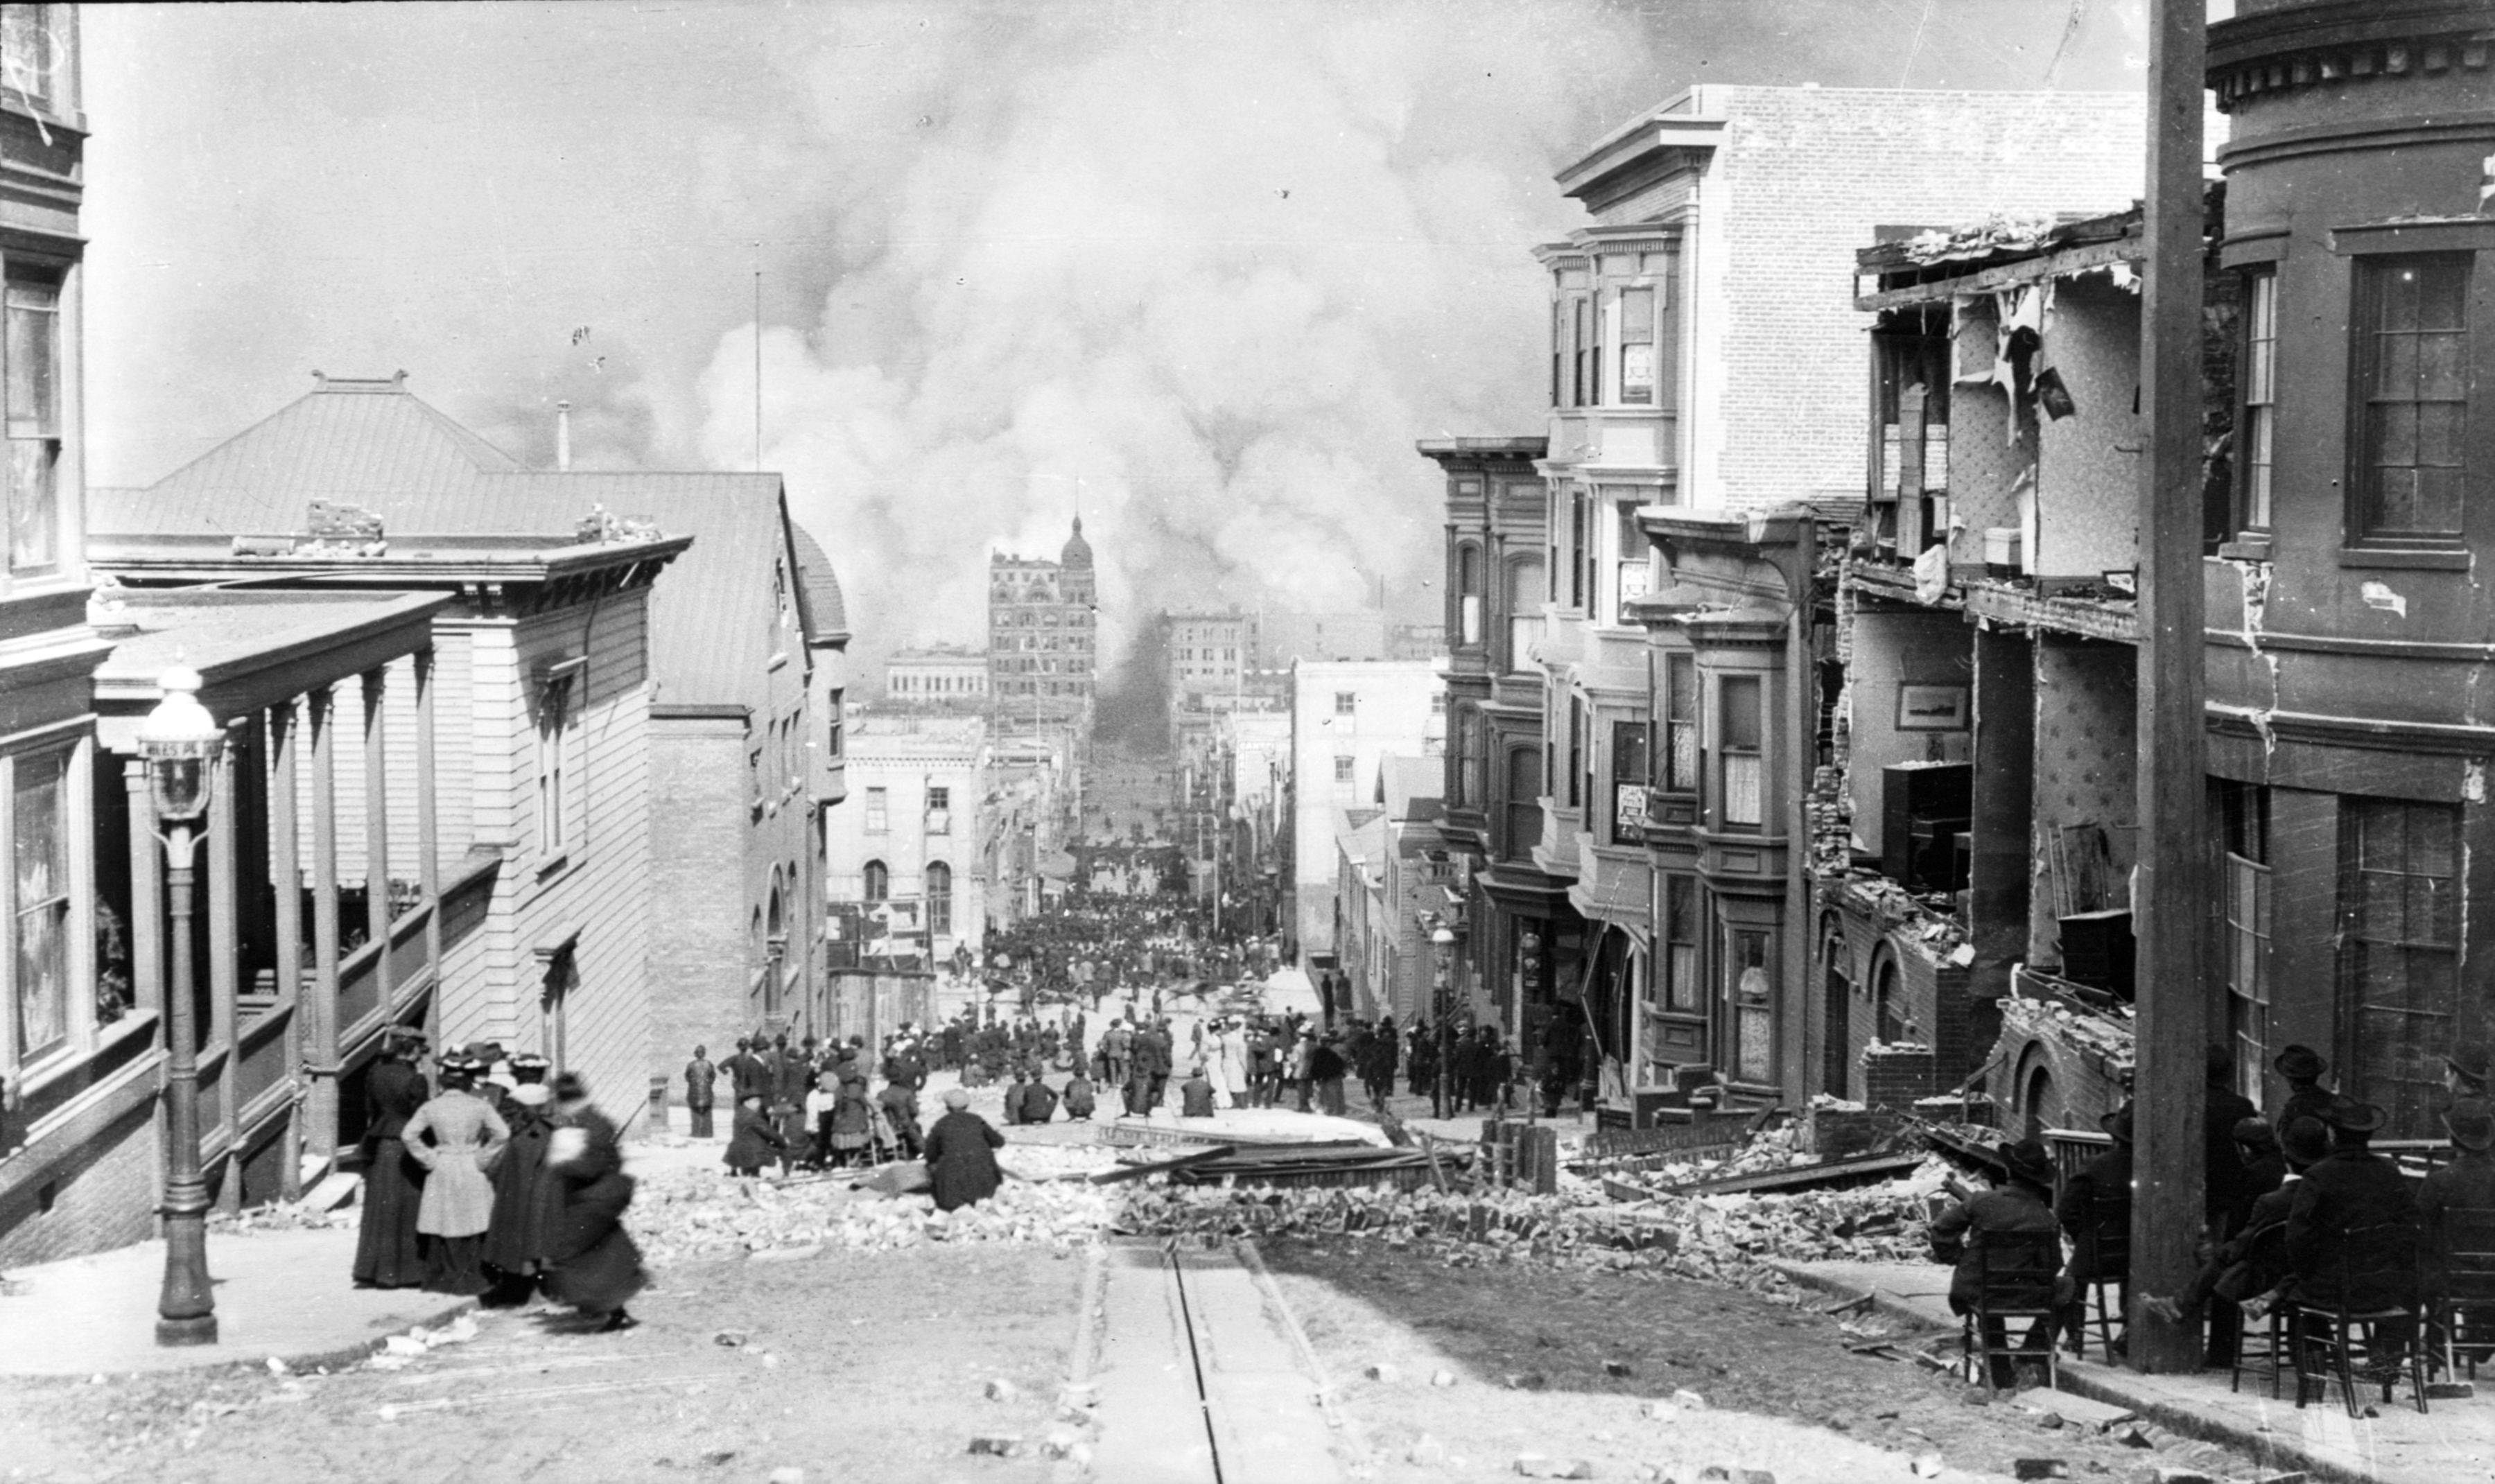 San Francisco fire after the 1906 earthquake, Sacramento Street, image by Arnold Genthe